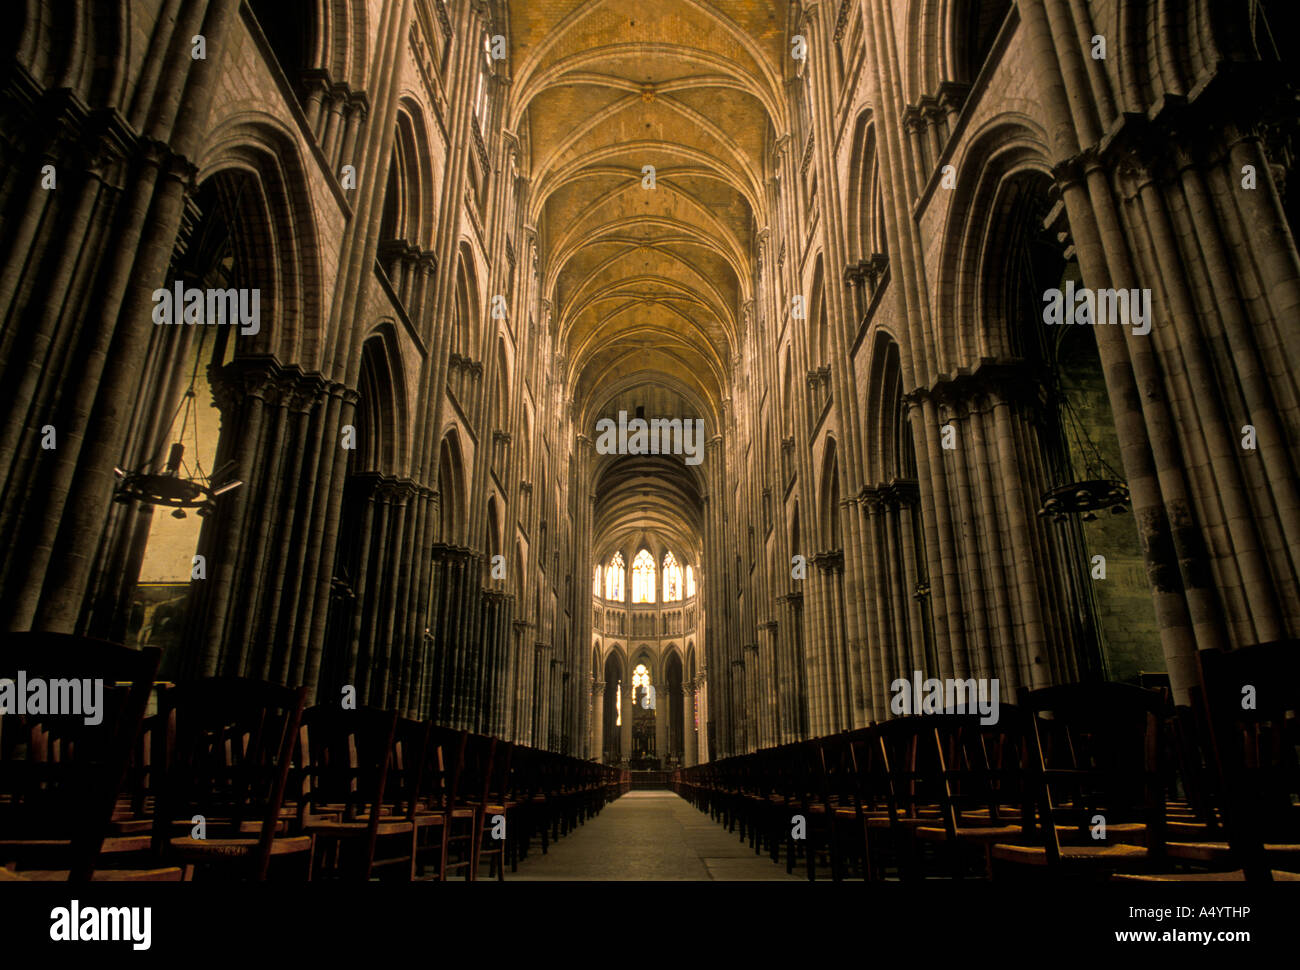 Nave Notre Dame Cathedral French Gothic Architecture City Of Rouen Upper Normandy France Europe